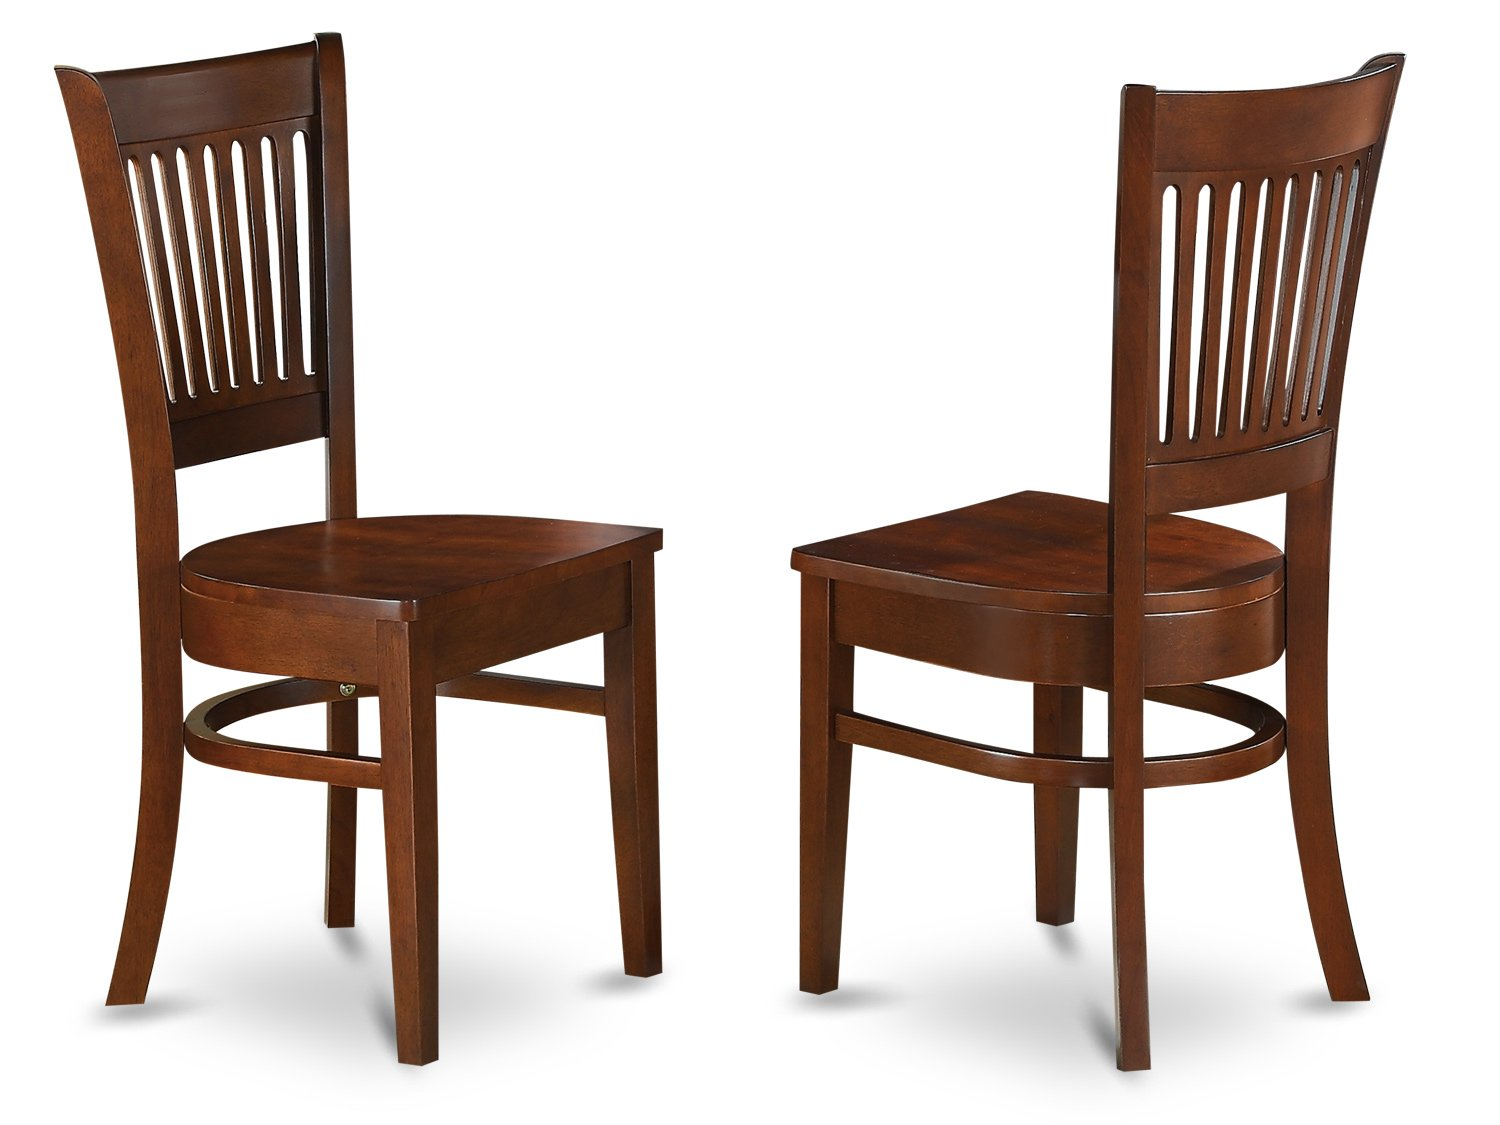 East West Furniture VAC-ESP-W Wood Seat Dining Chairs, Espresso Finish, Set of 2